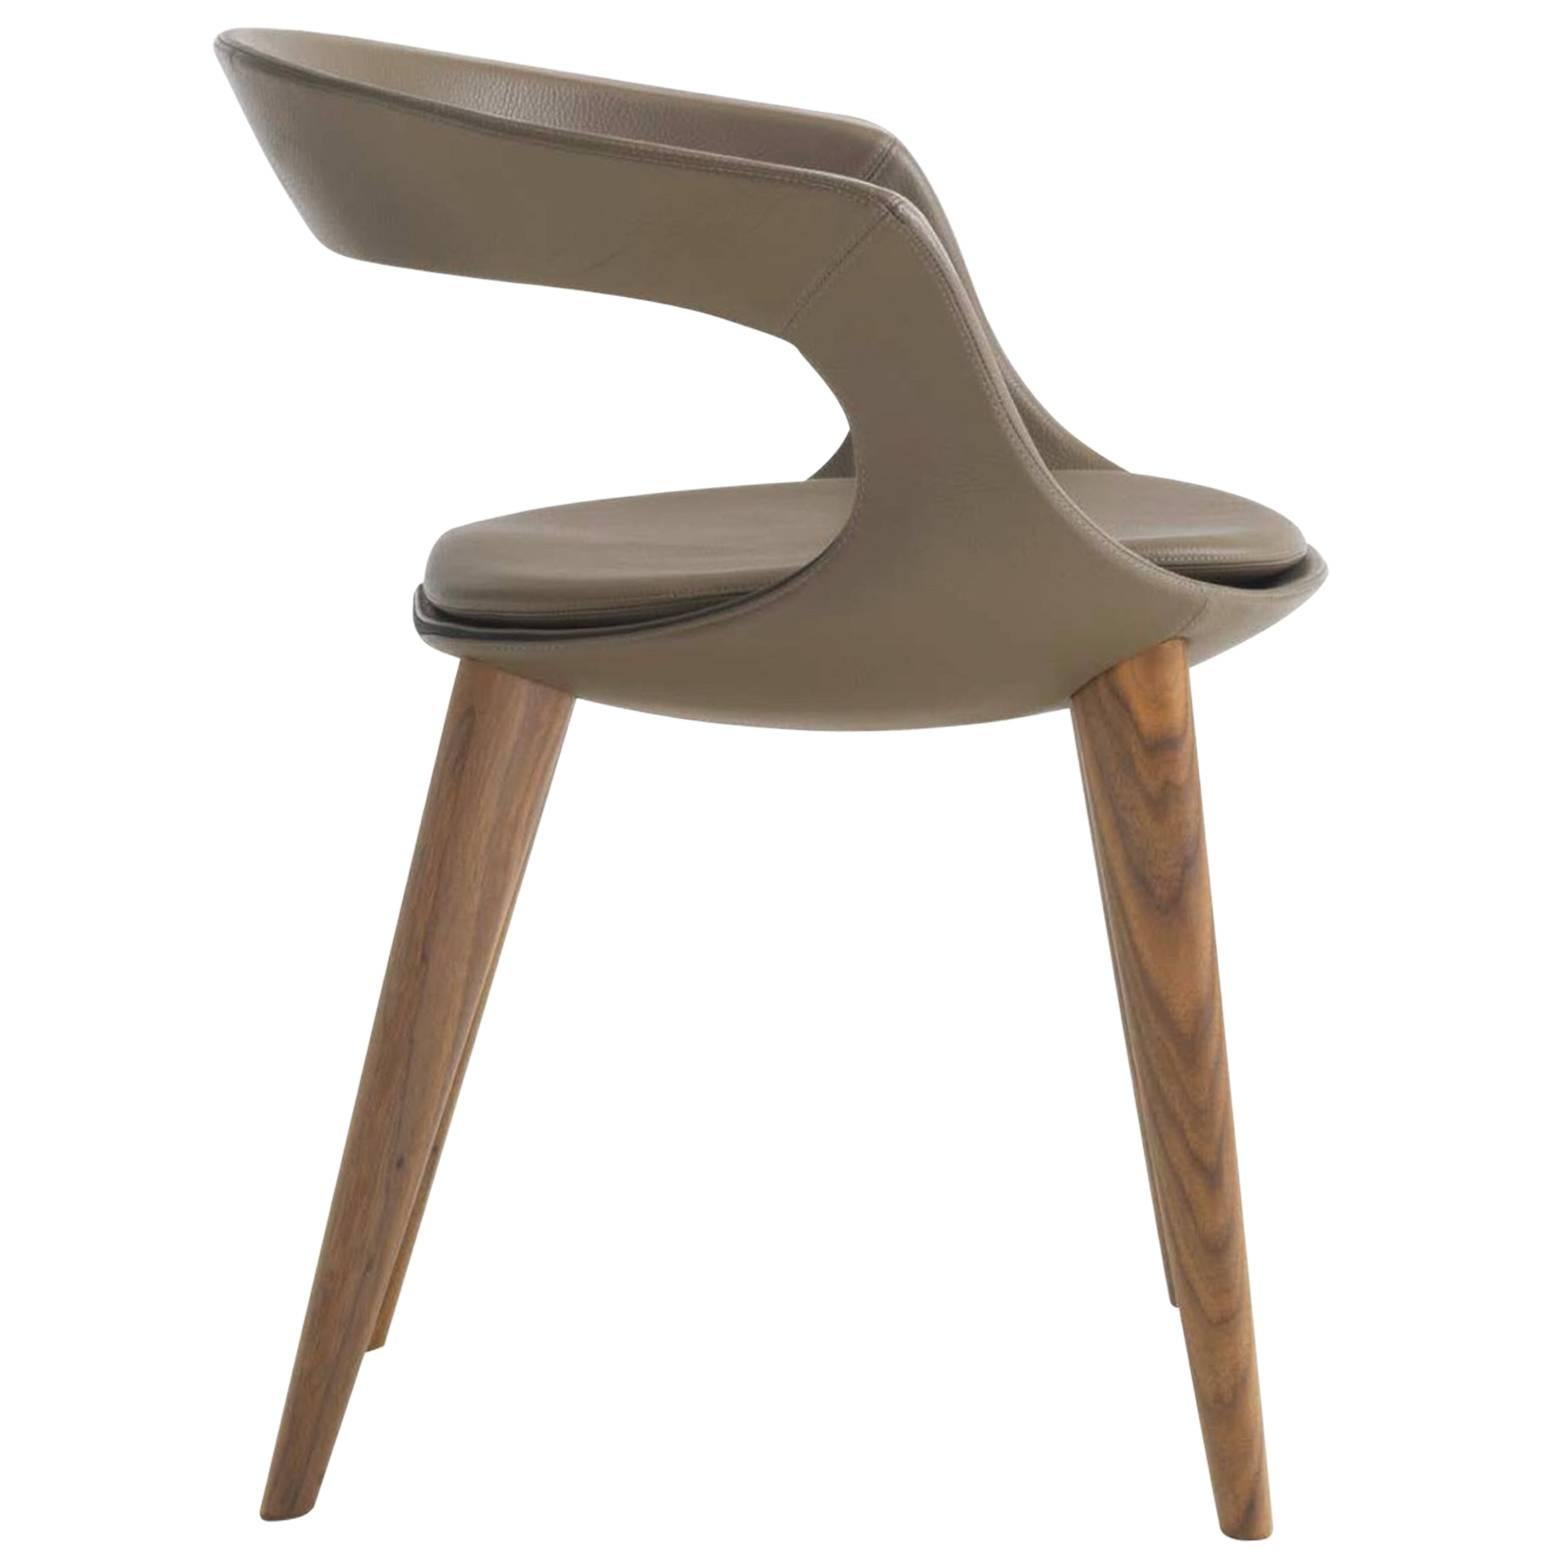 Superieur Modern Italian Leather Dining Chairs With Wooden Legs, Hand Made In Italy